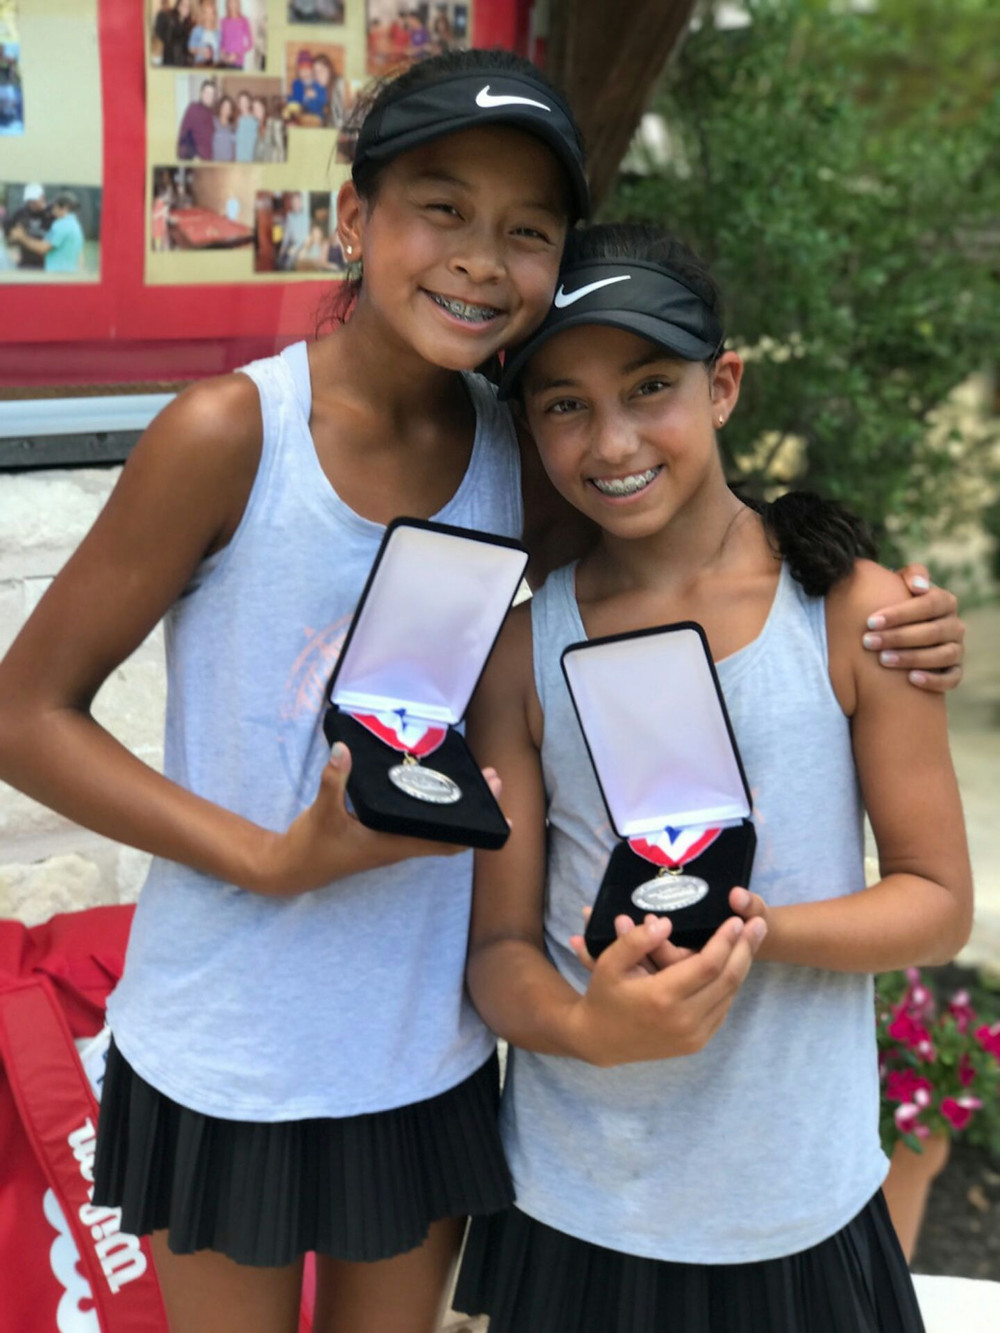 Isabella Chiiv, Girl's 12s Doubles Finalist and takes 6th place in singles at National level 2 Austin, Texas.